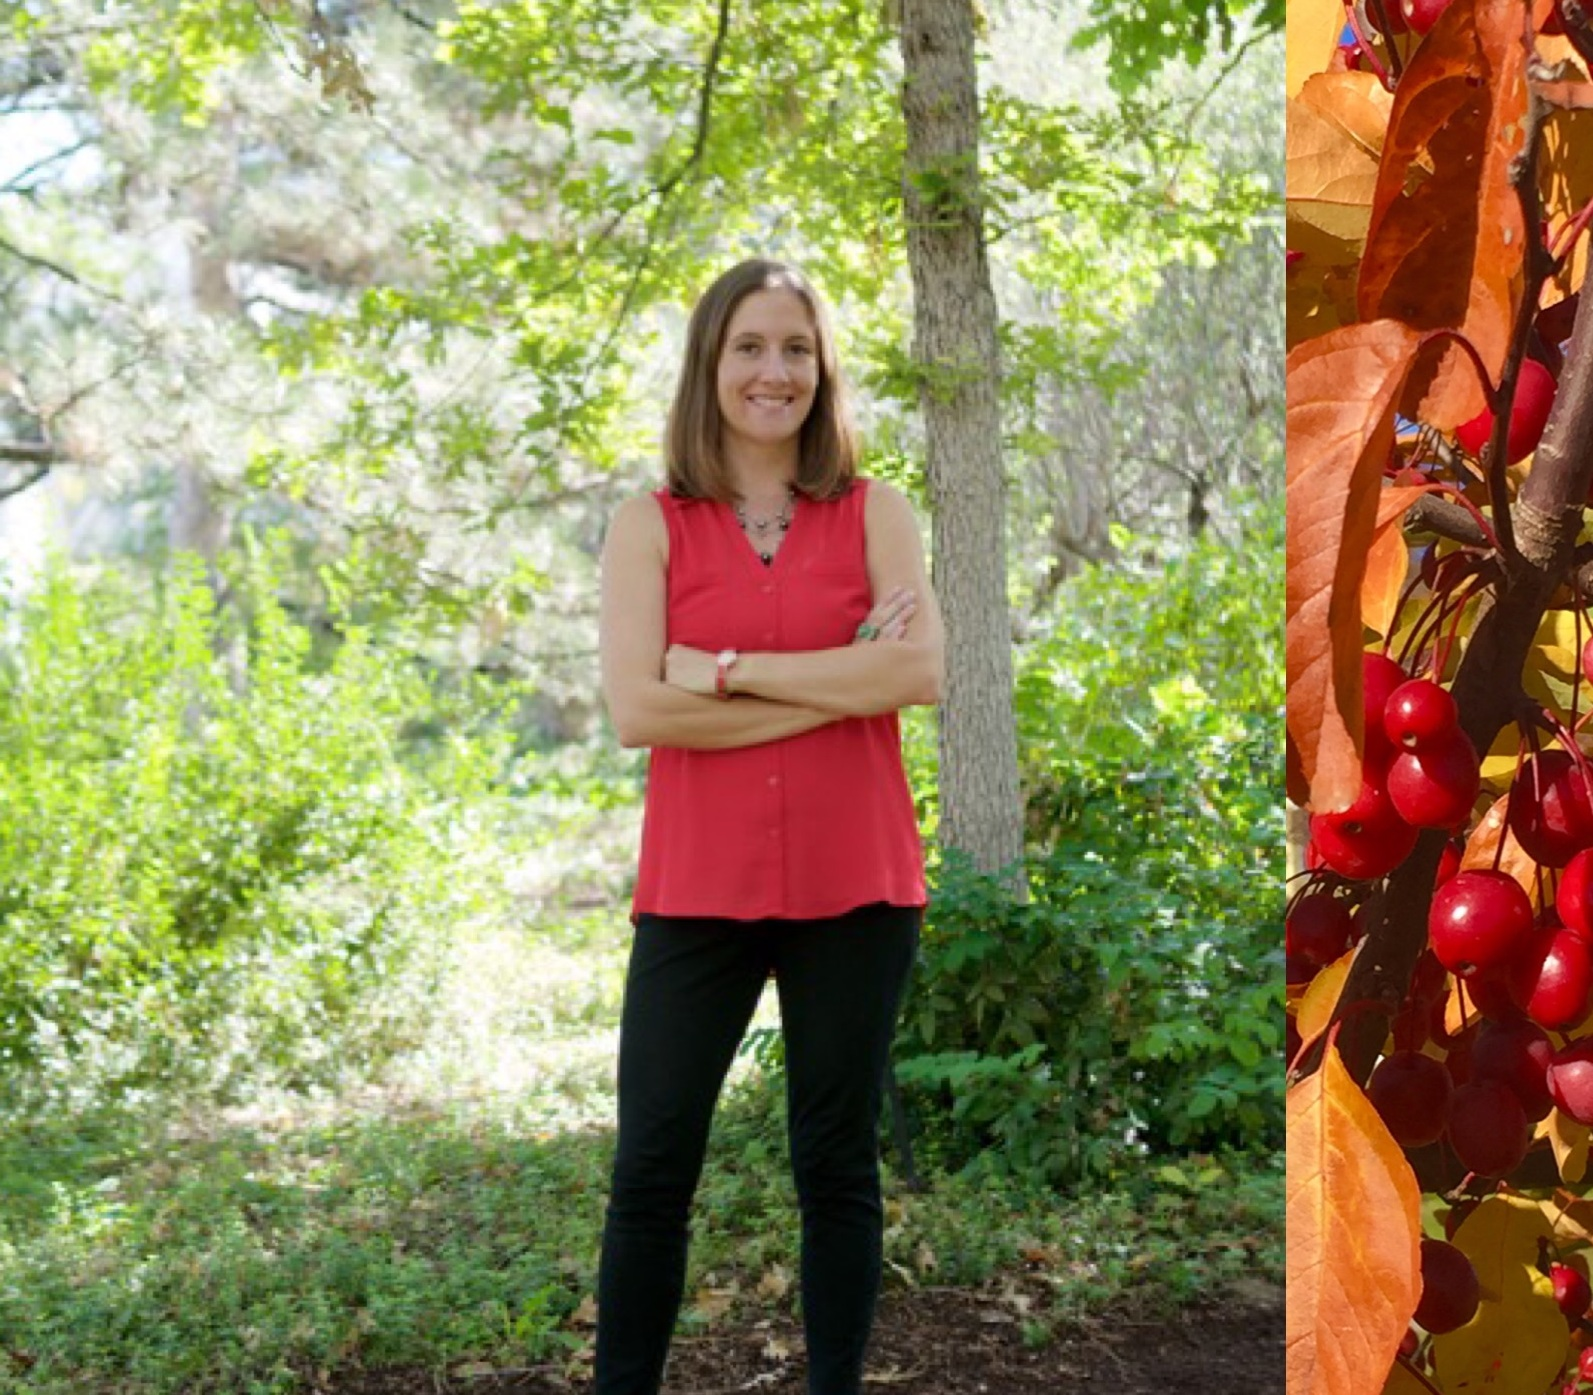 A Woman's Story of Healing an Eating Disorder by Growing Her Own Food